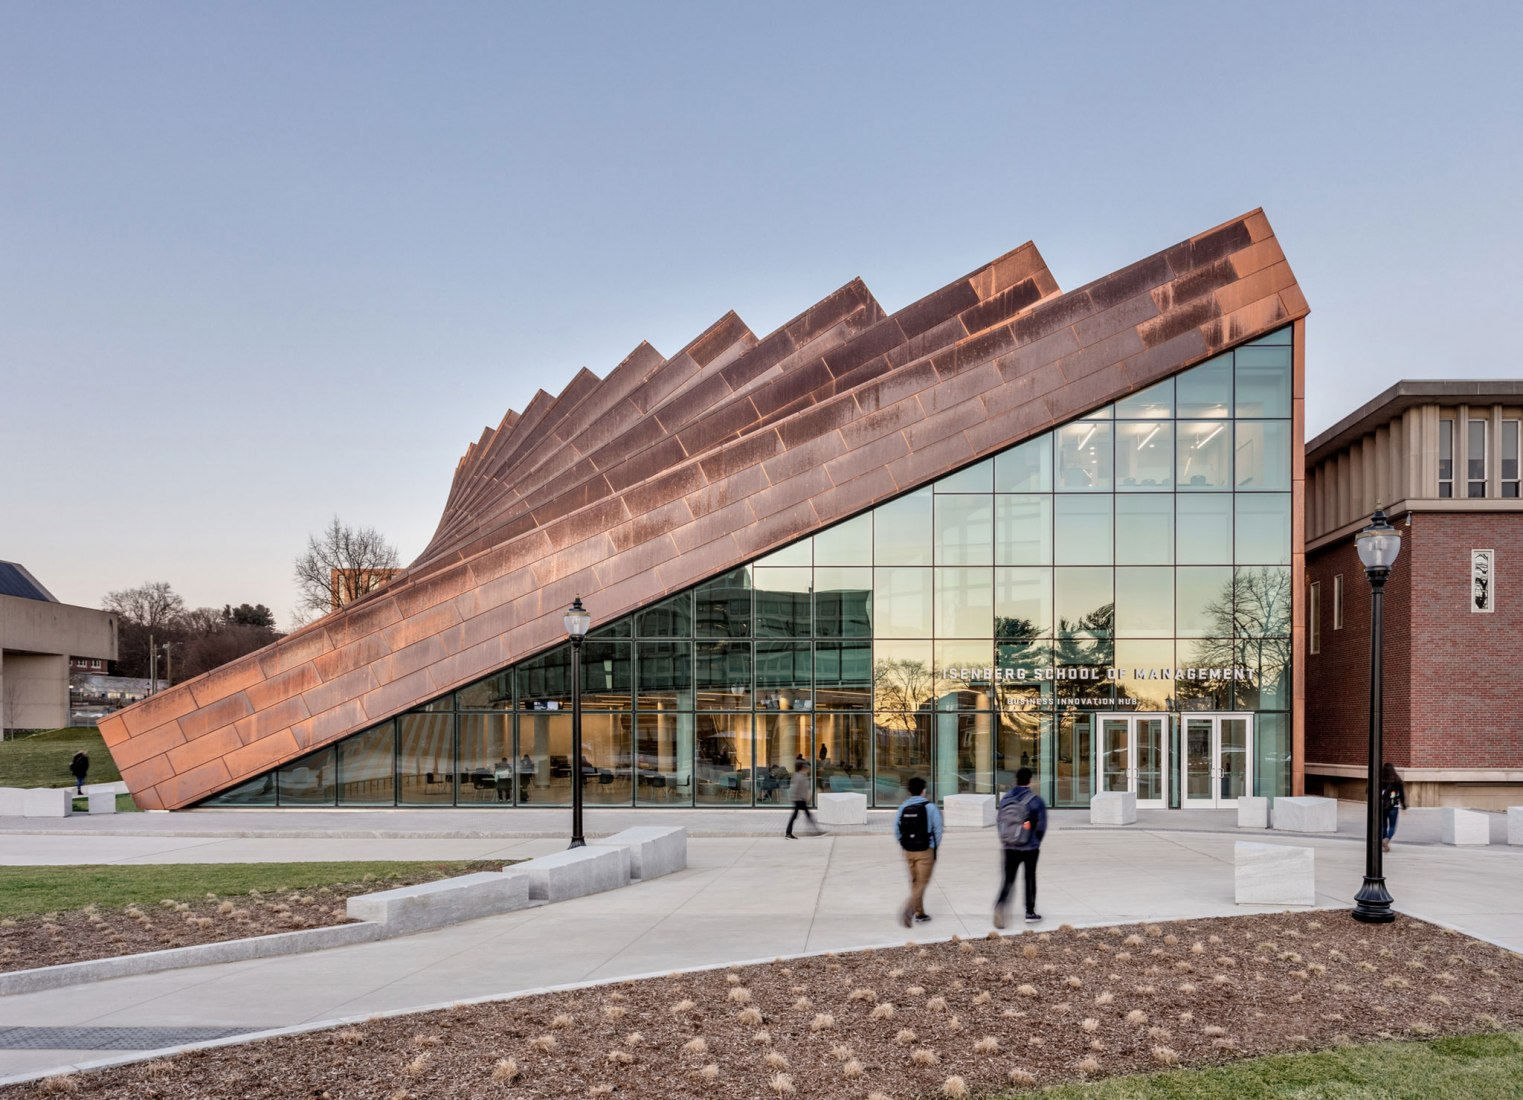 Isenberg School Of Management Business Innovation Hub by BIG. Image by Max Touhey.